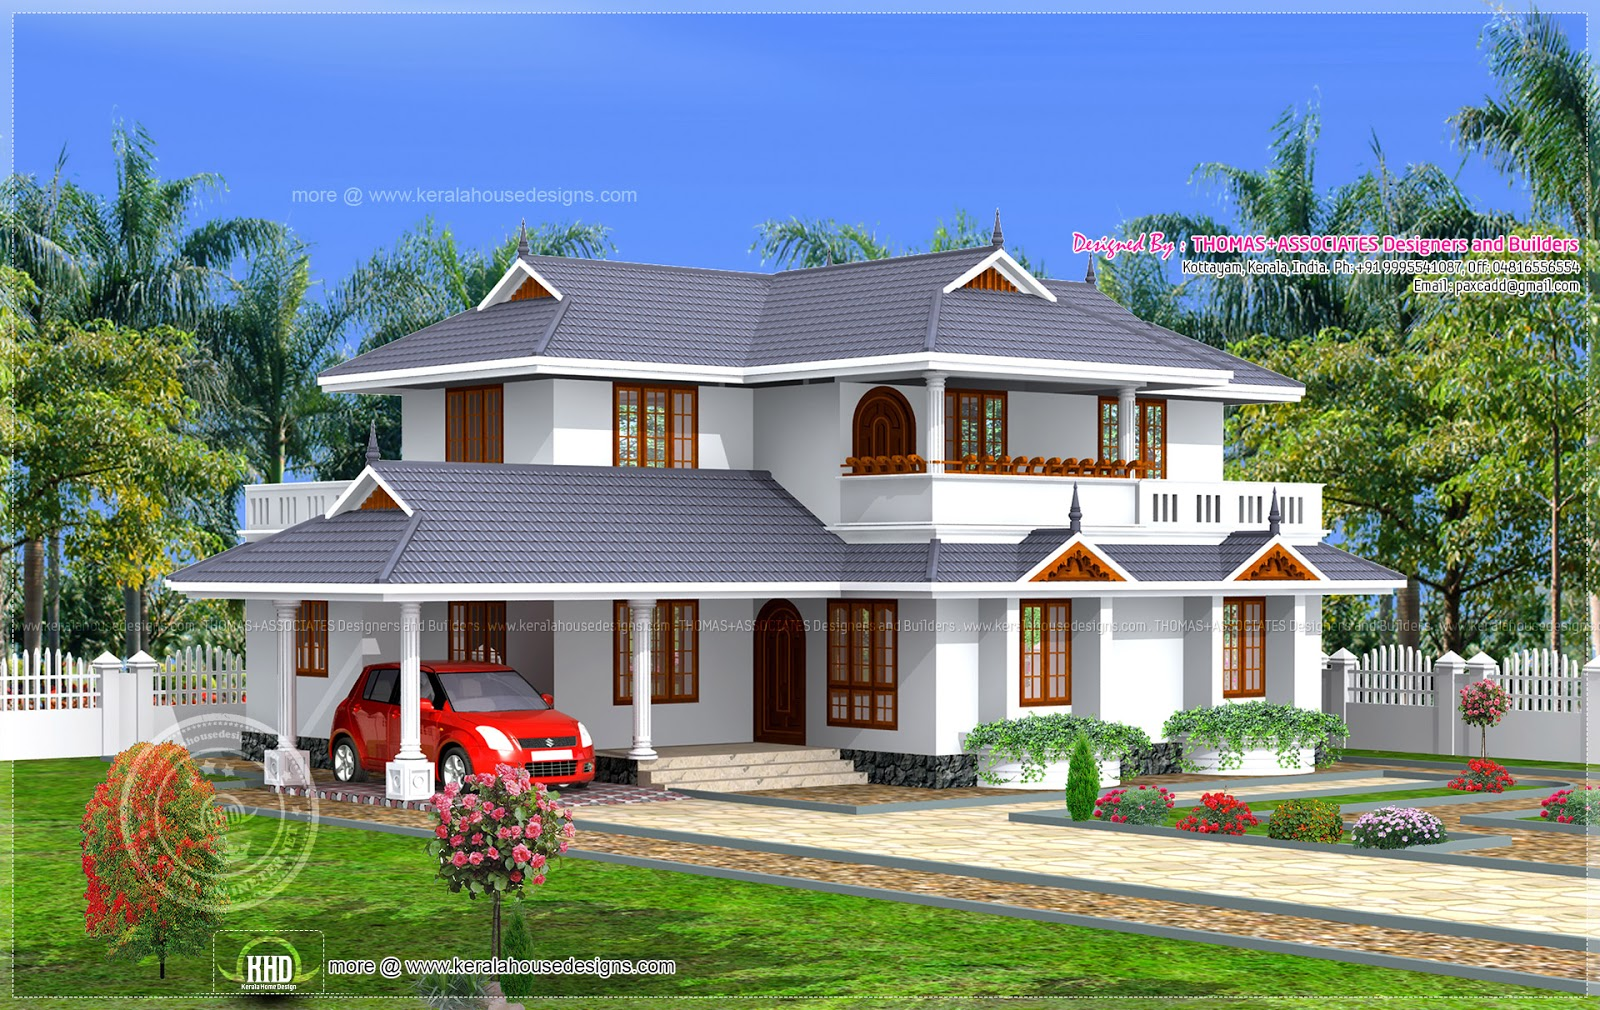 May 2010 kerala home design and floor plans for Kerala model house photos with details